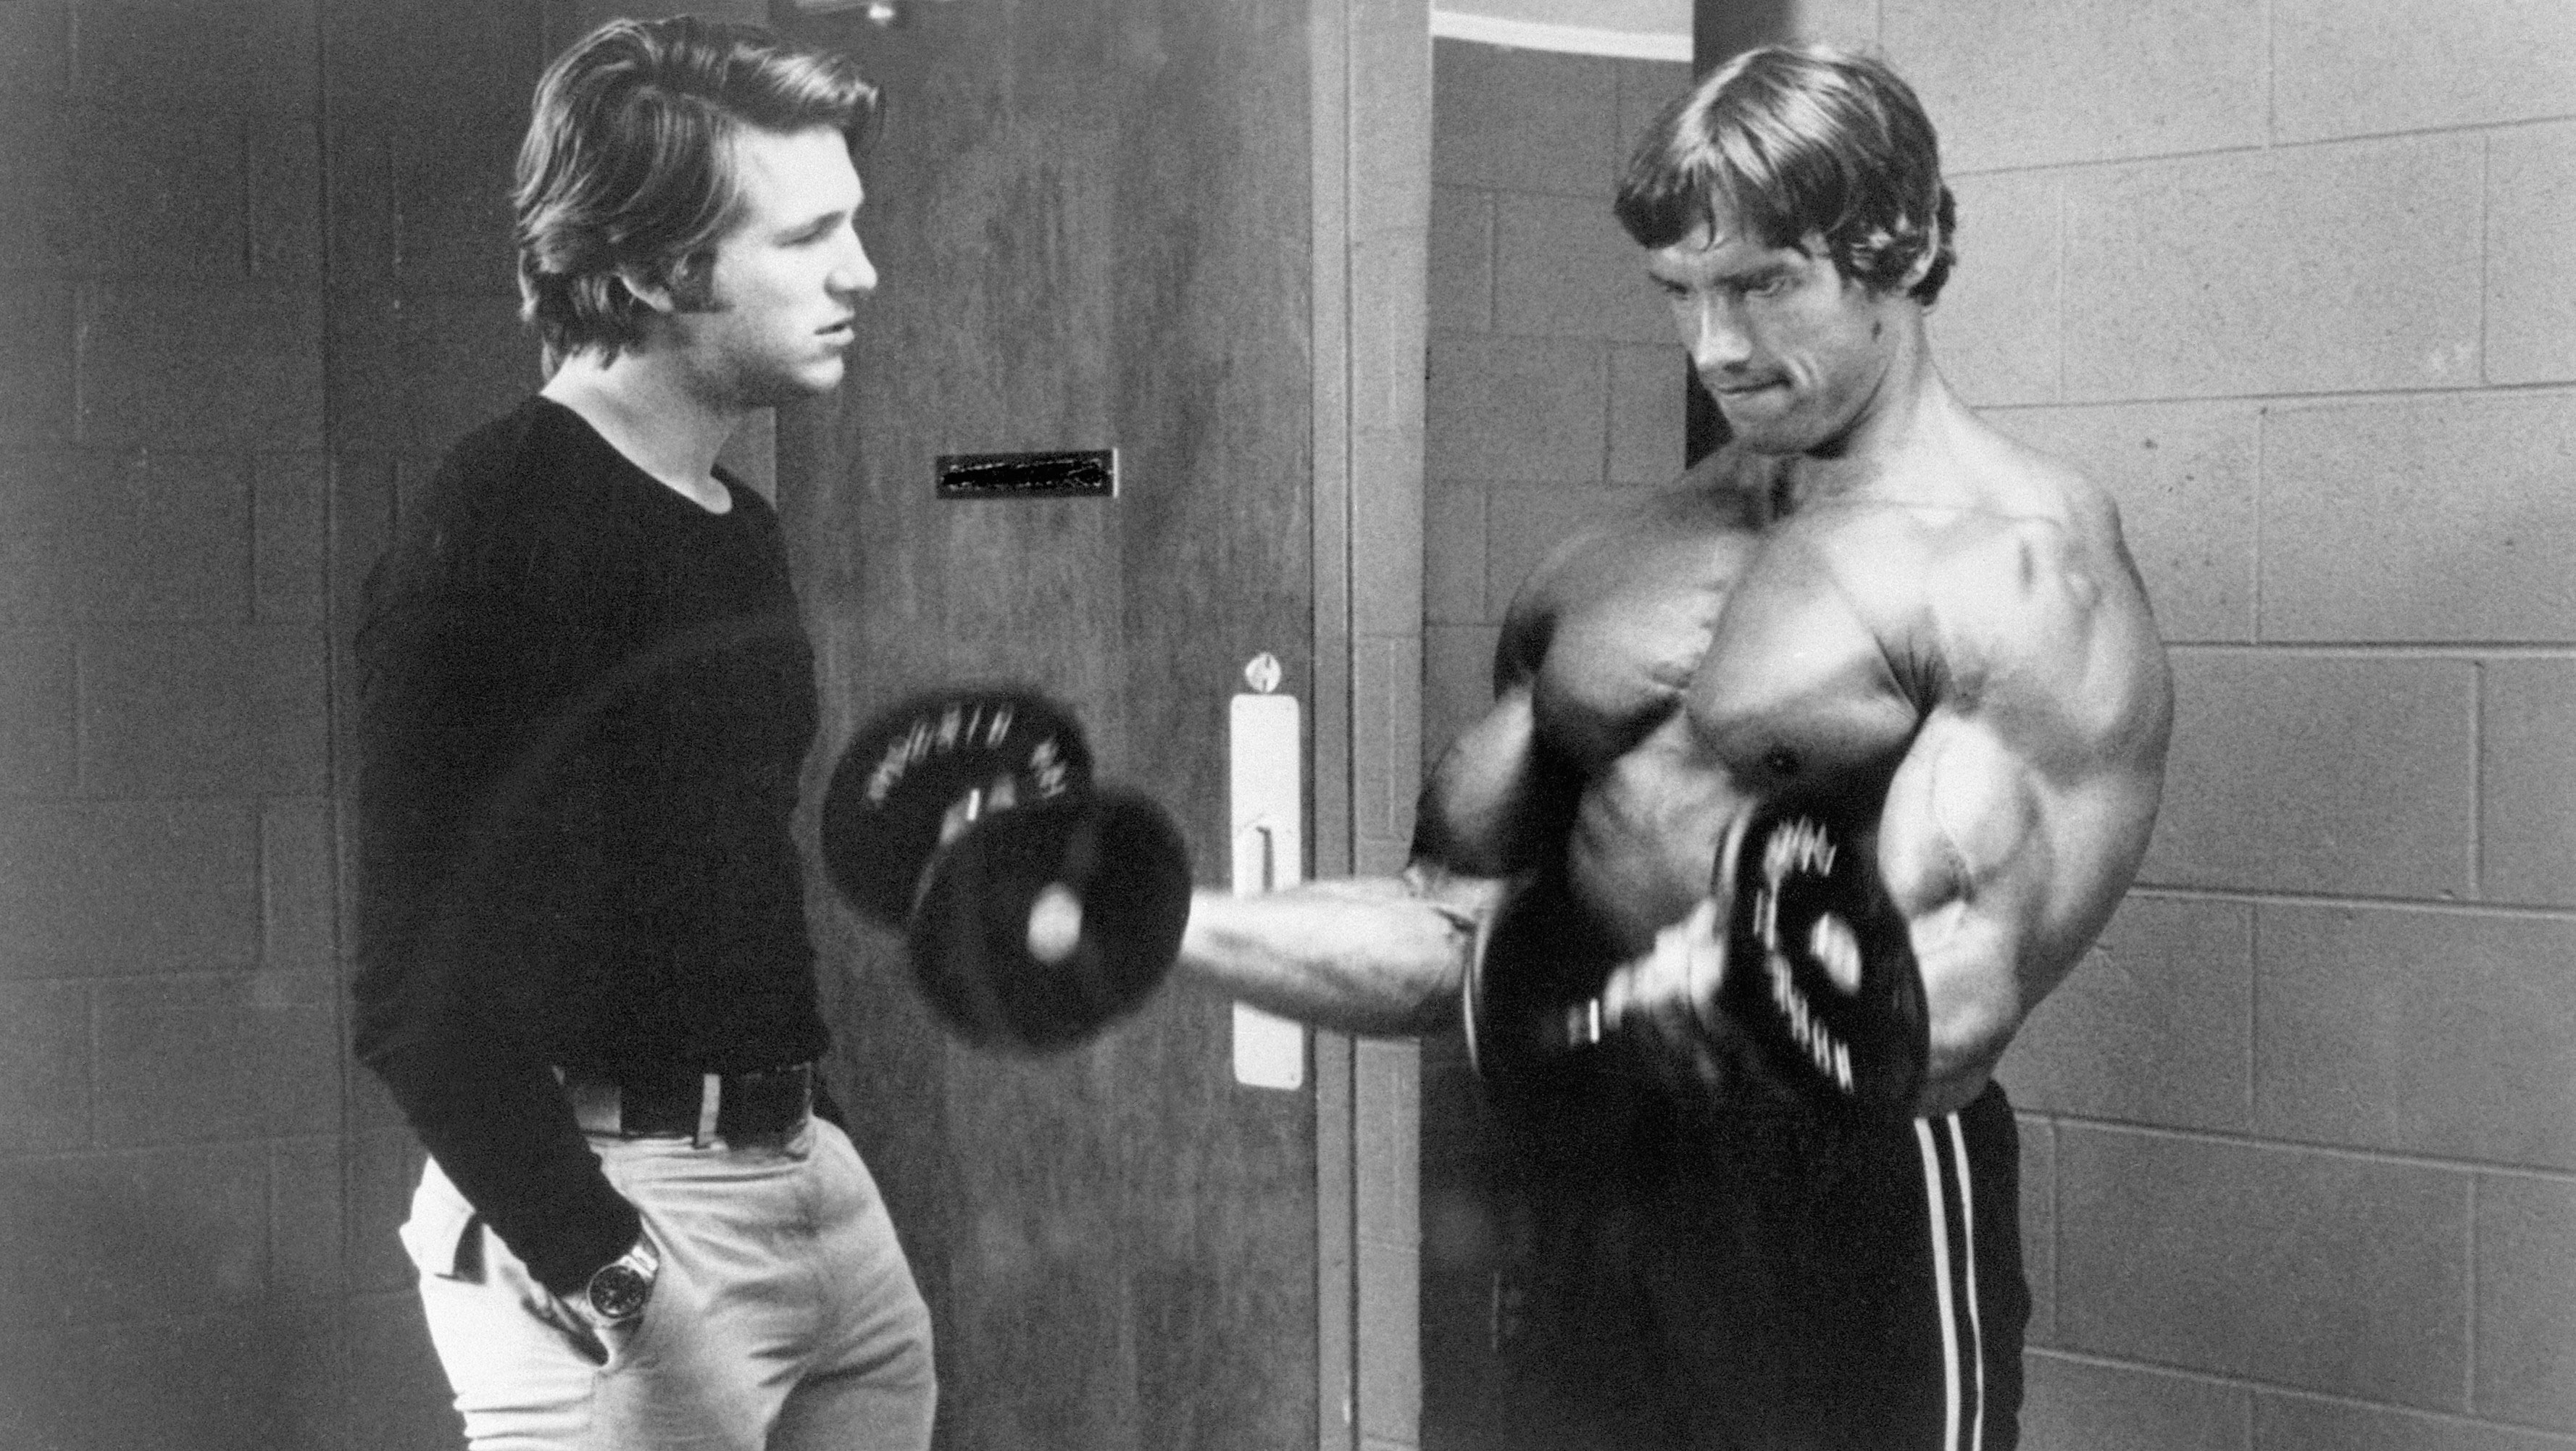 The Most Inspiring Movies Every Bodybuilder Needs to See